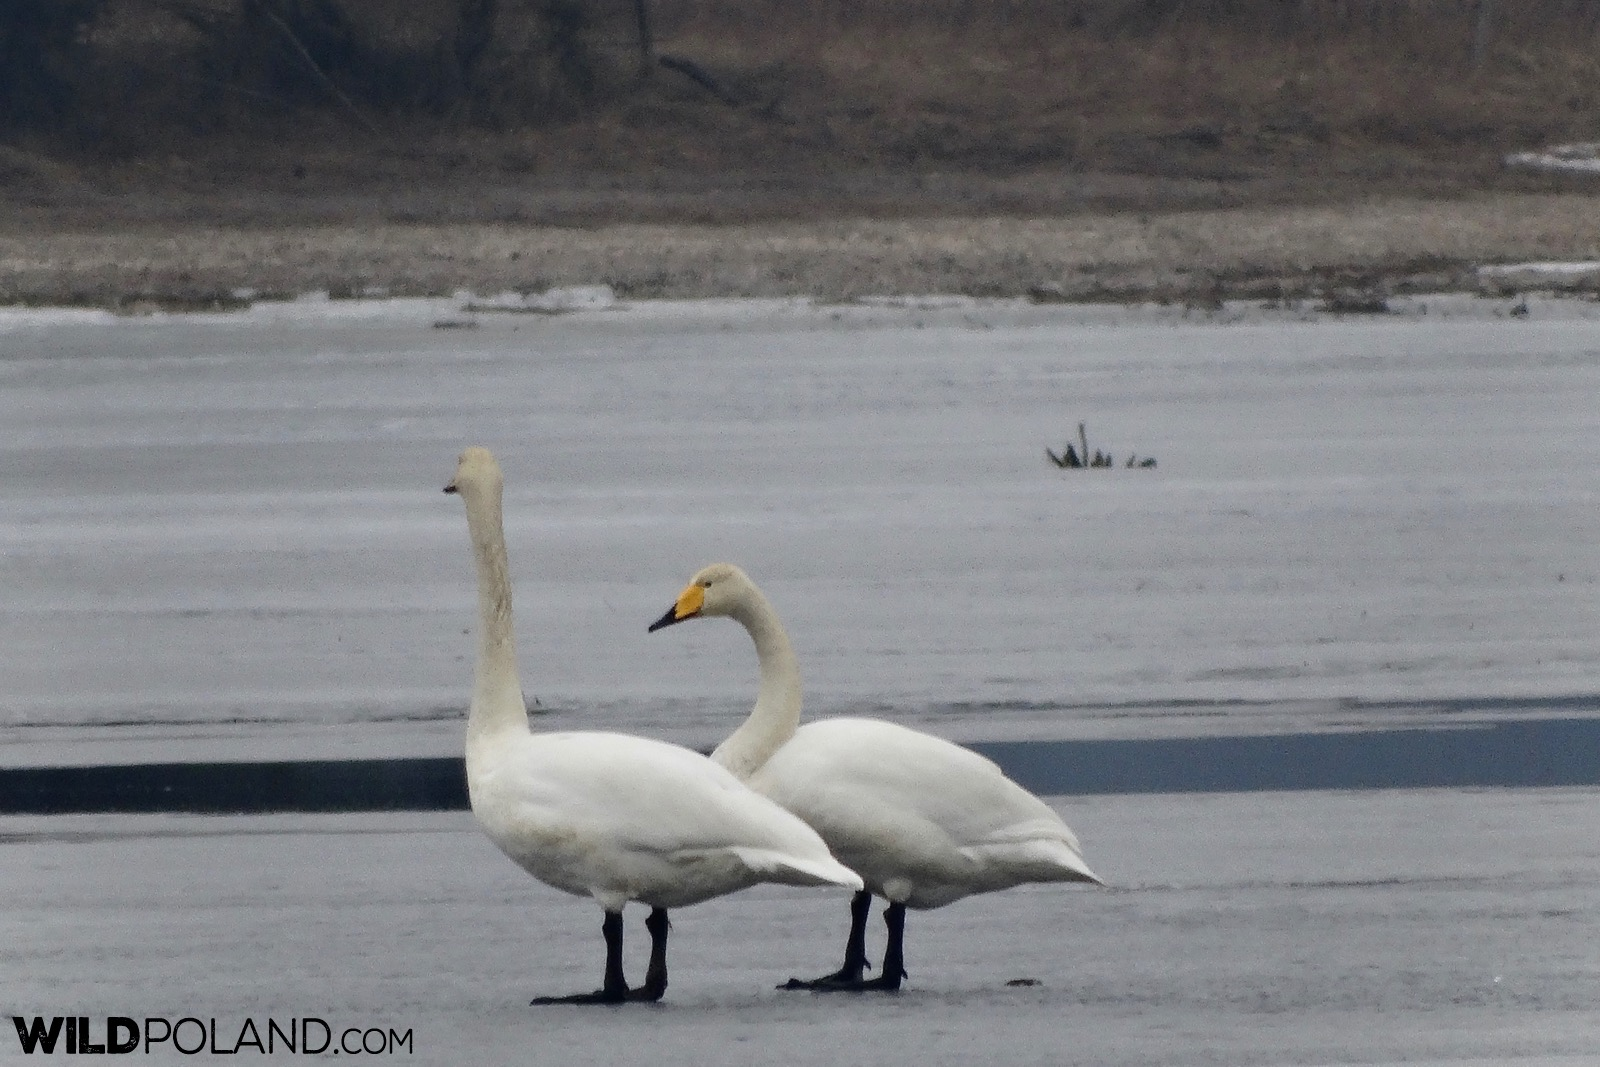 Whooper Swans at the frozen surface of the river, photo by Piotr Dębowski